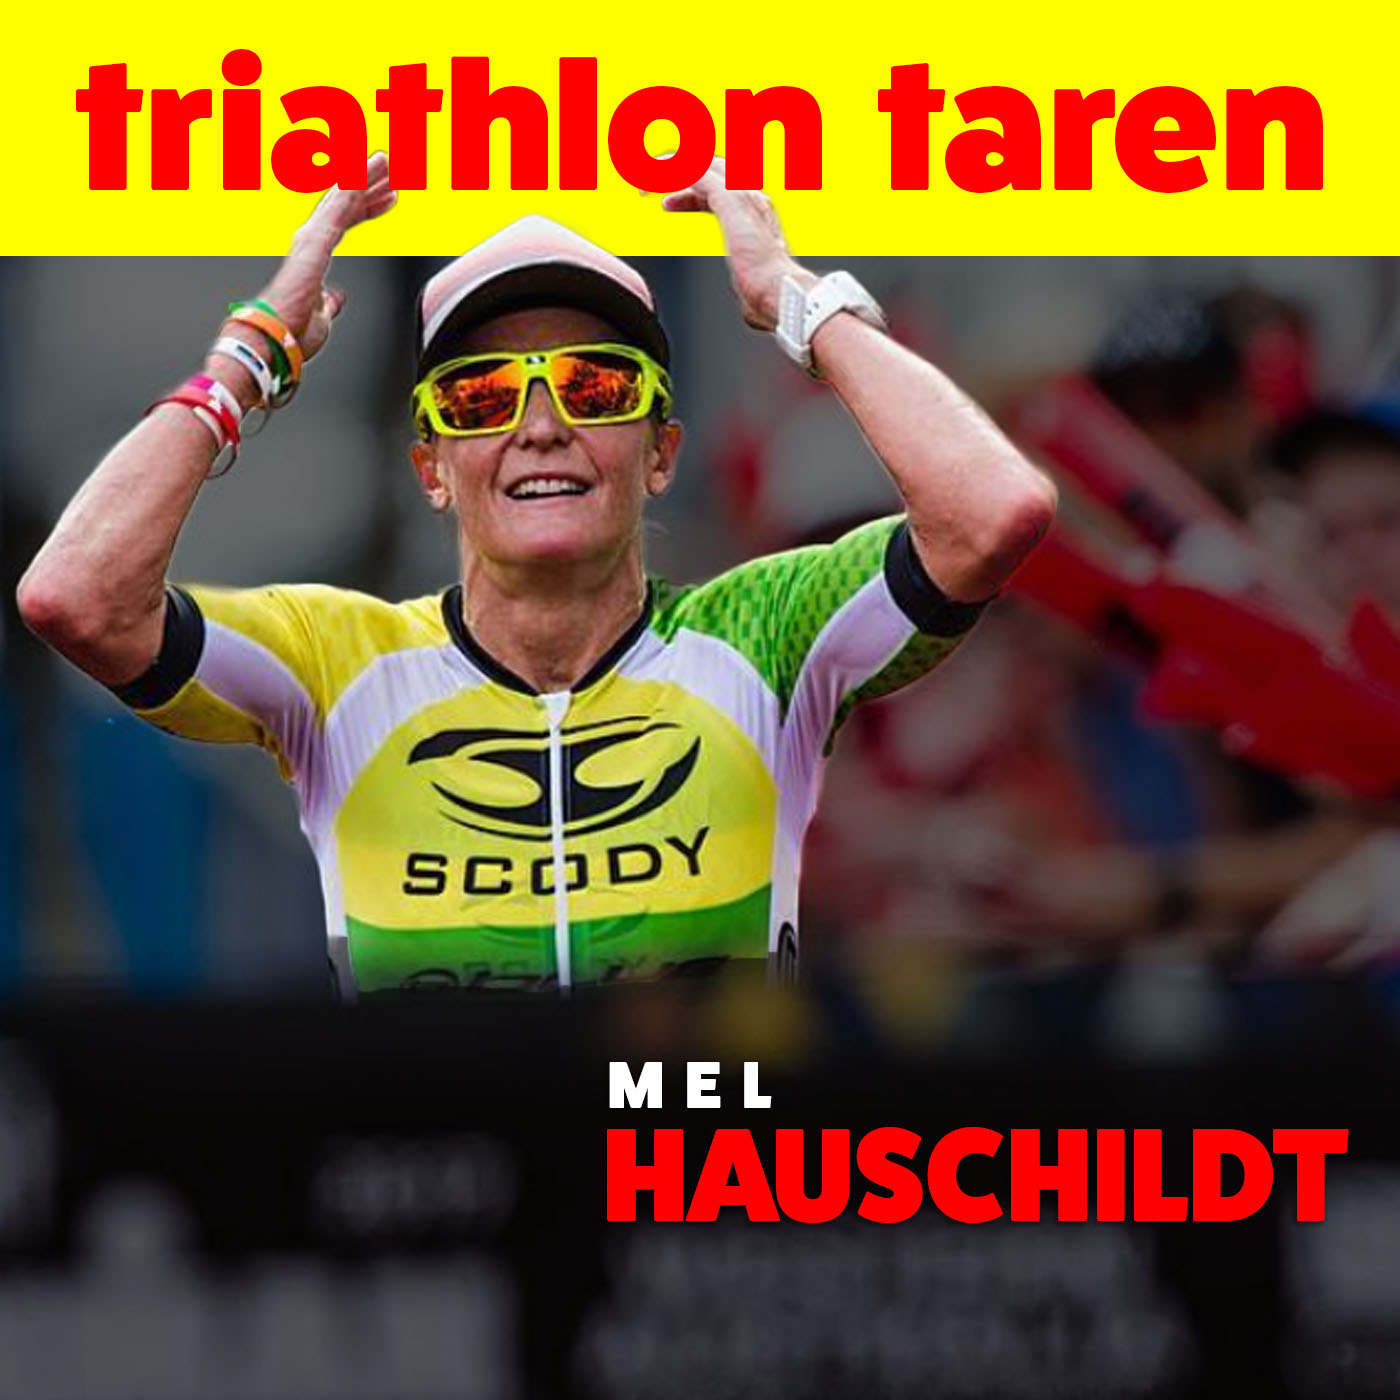 Melissa Hauschildt: All that's left is for her to win Kona